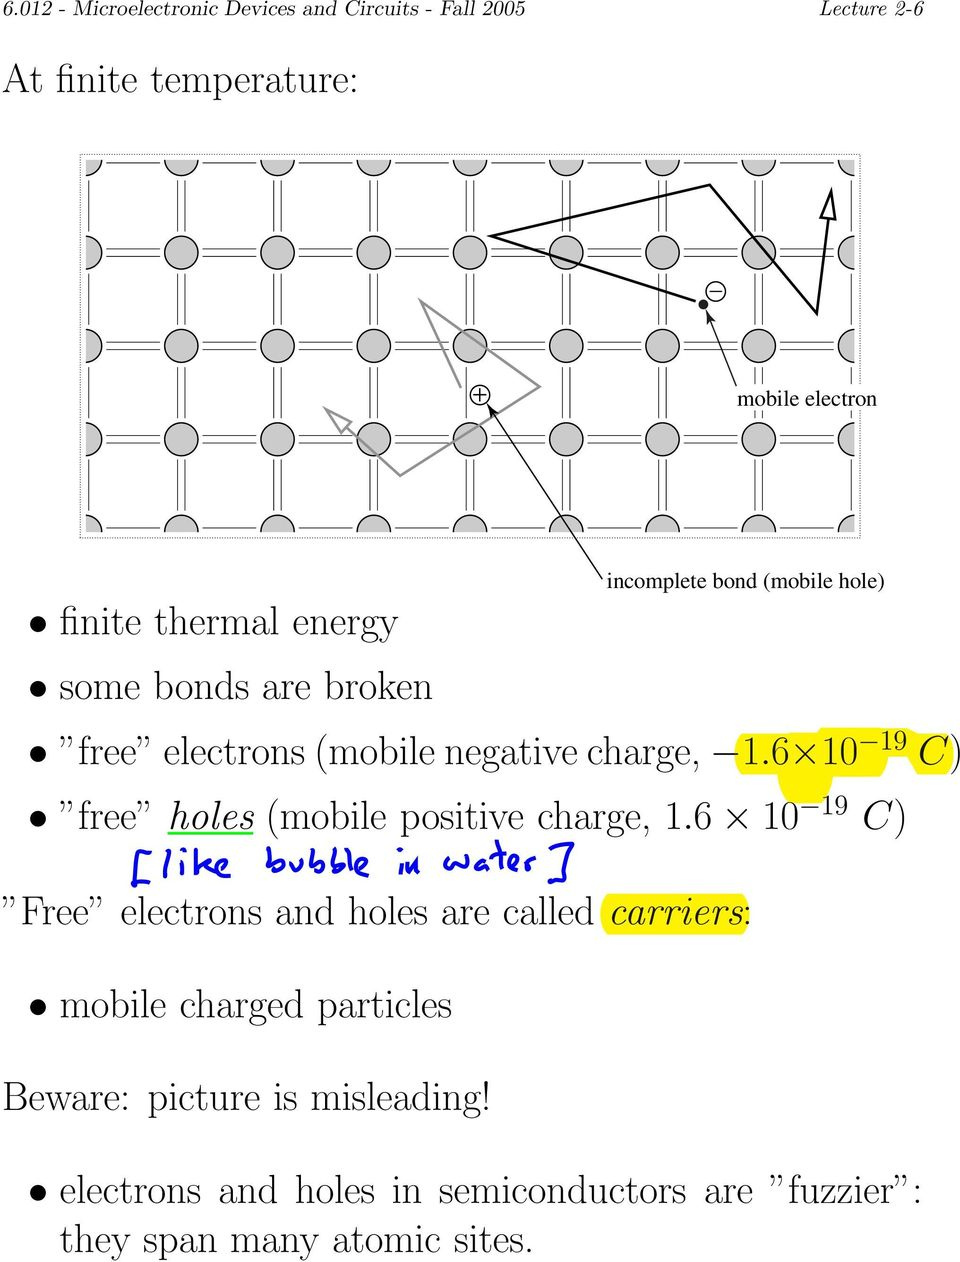 6 1010 19 C) free holes (mobile positive charge, 1.